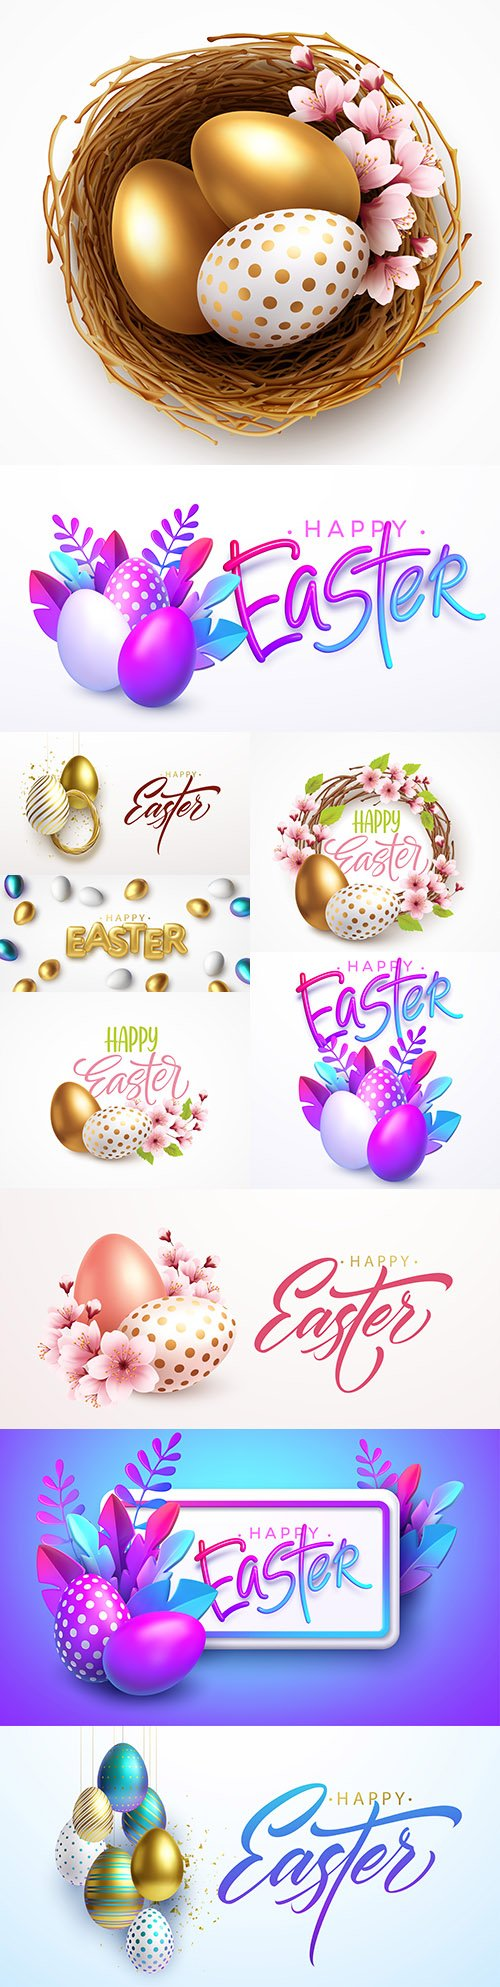 Happy Easter background with realistic eggs and spring flowers